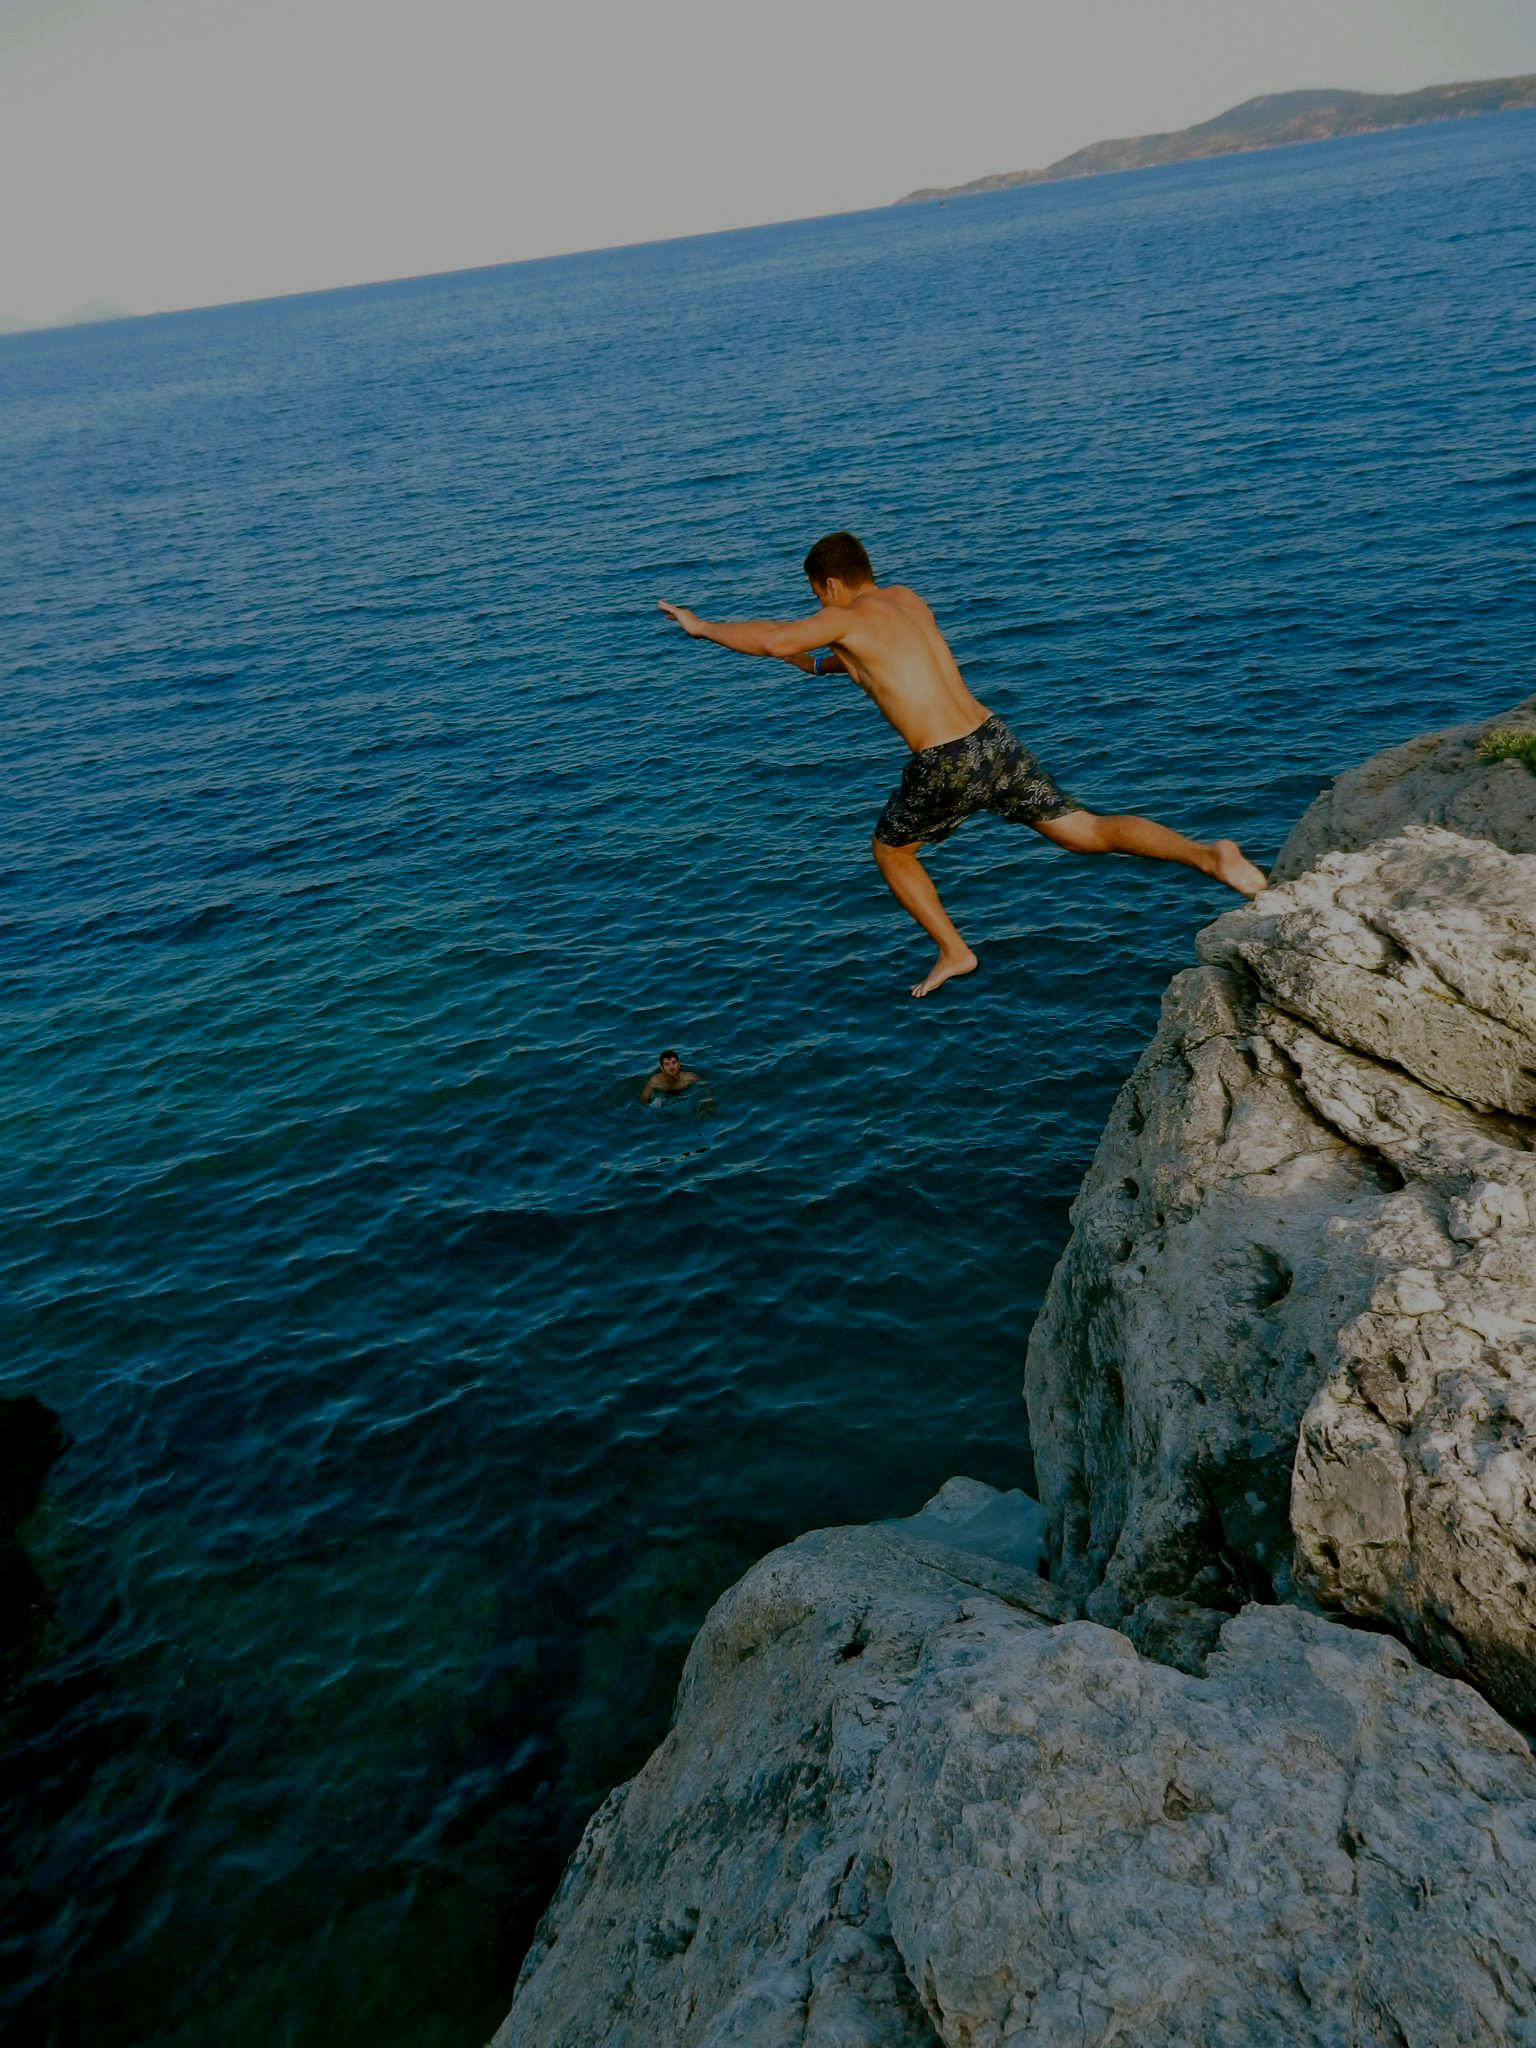 Elad Schor Jumping off a cliff in Greece